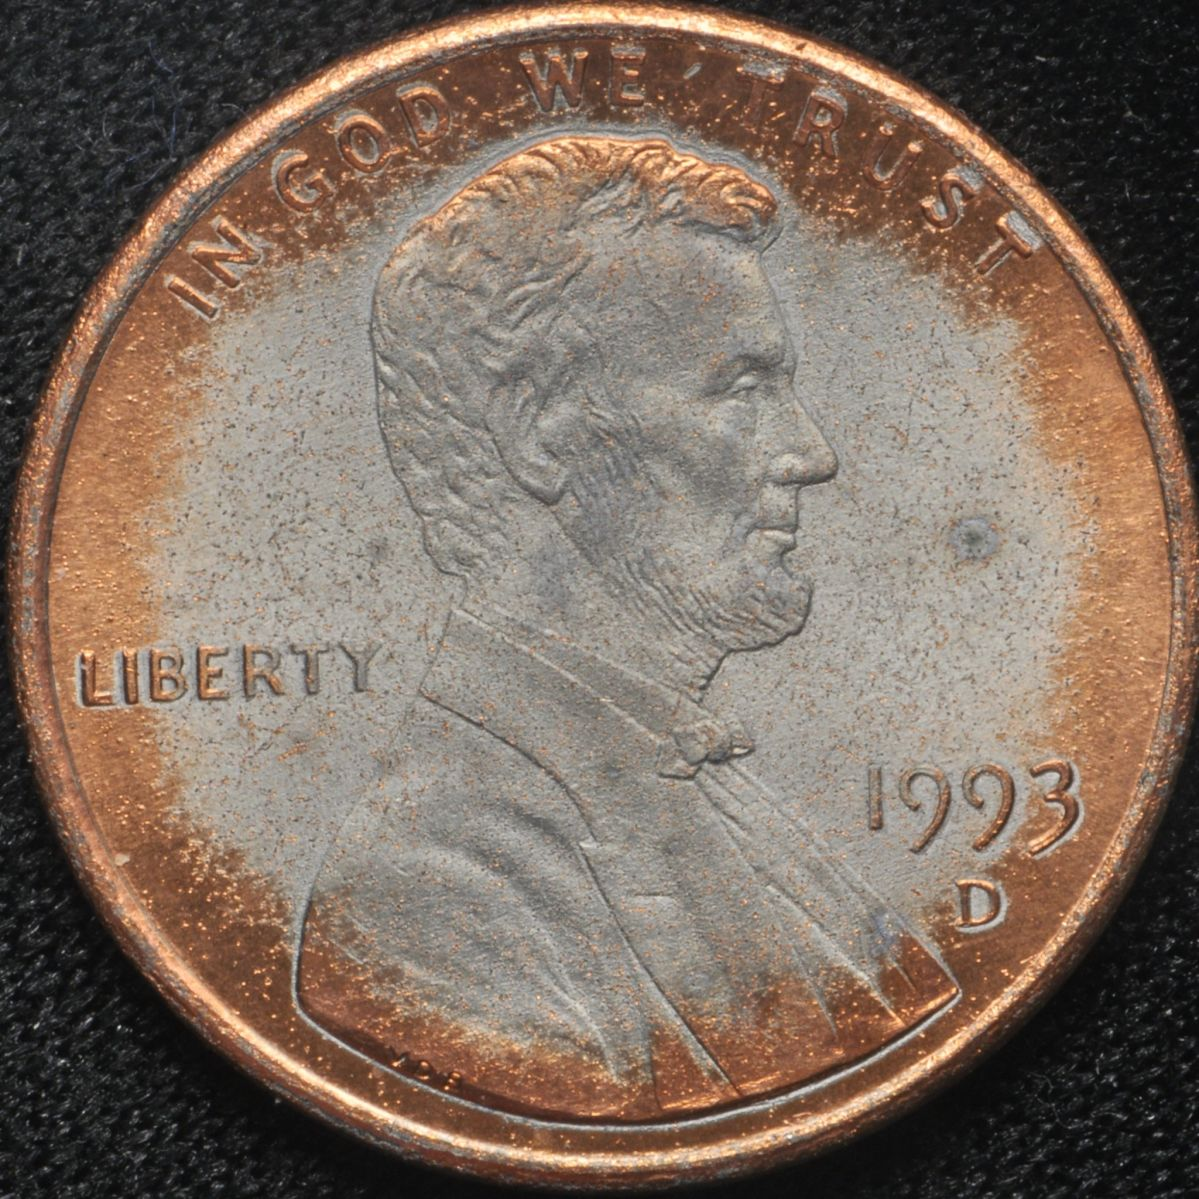 1993 D Lincoln Cent Plating Issues - Coin Community Forum